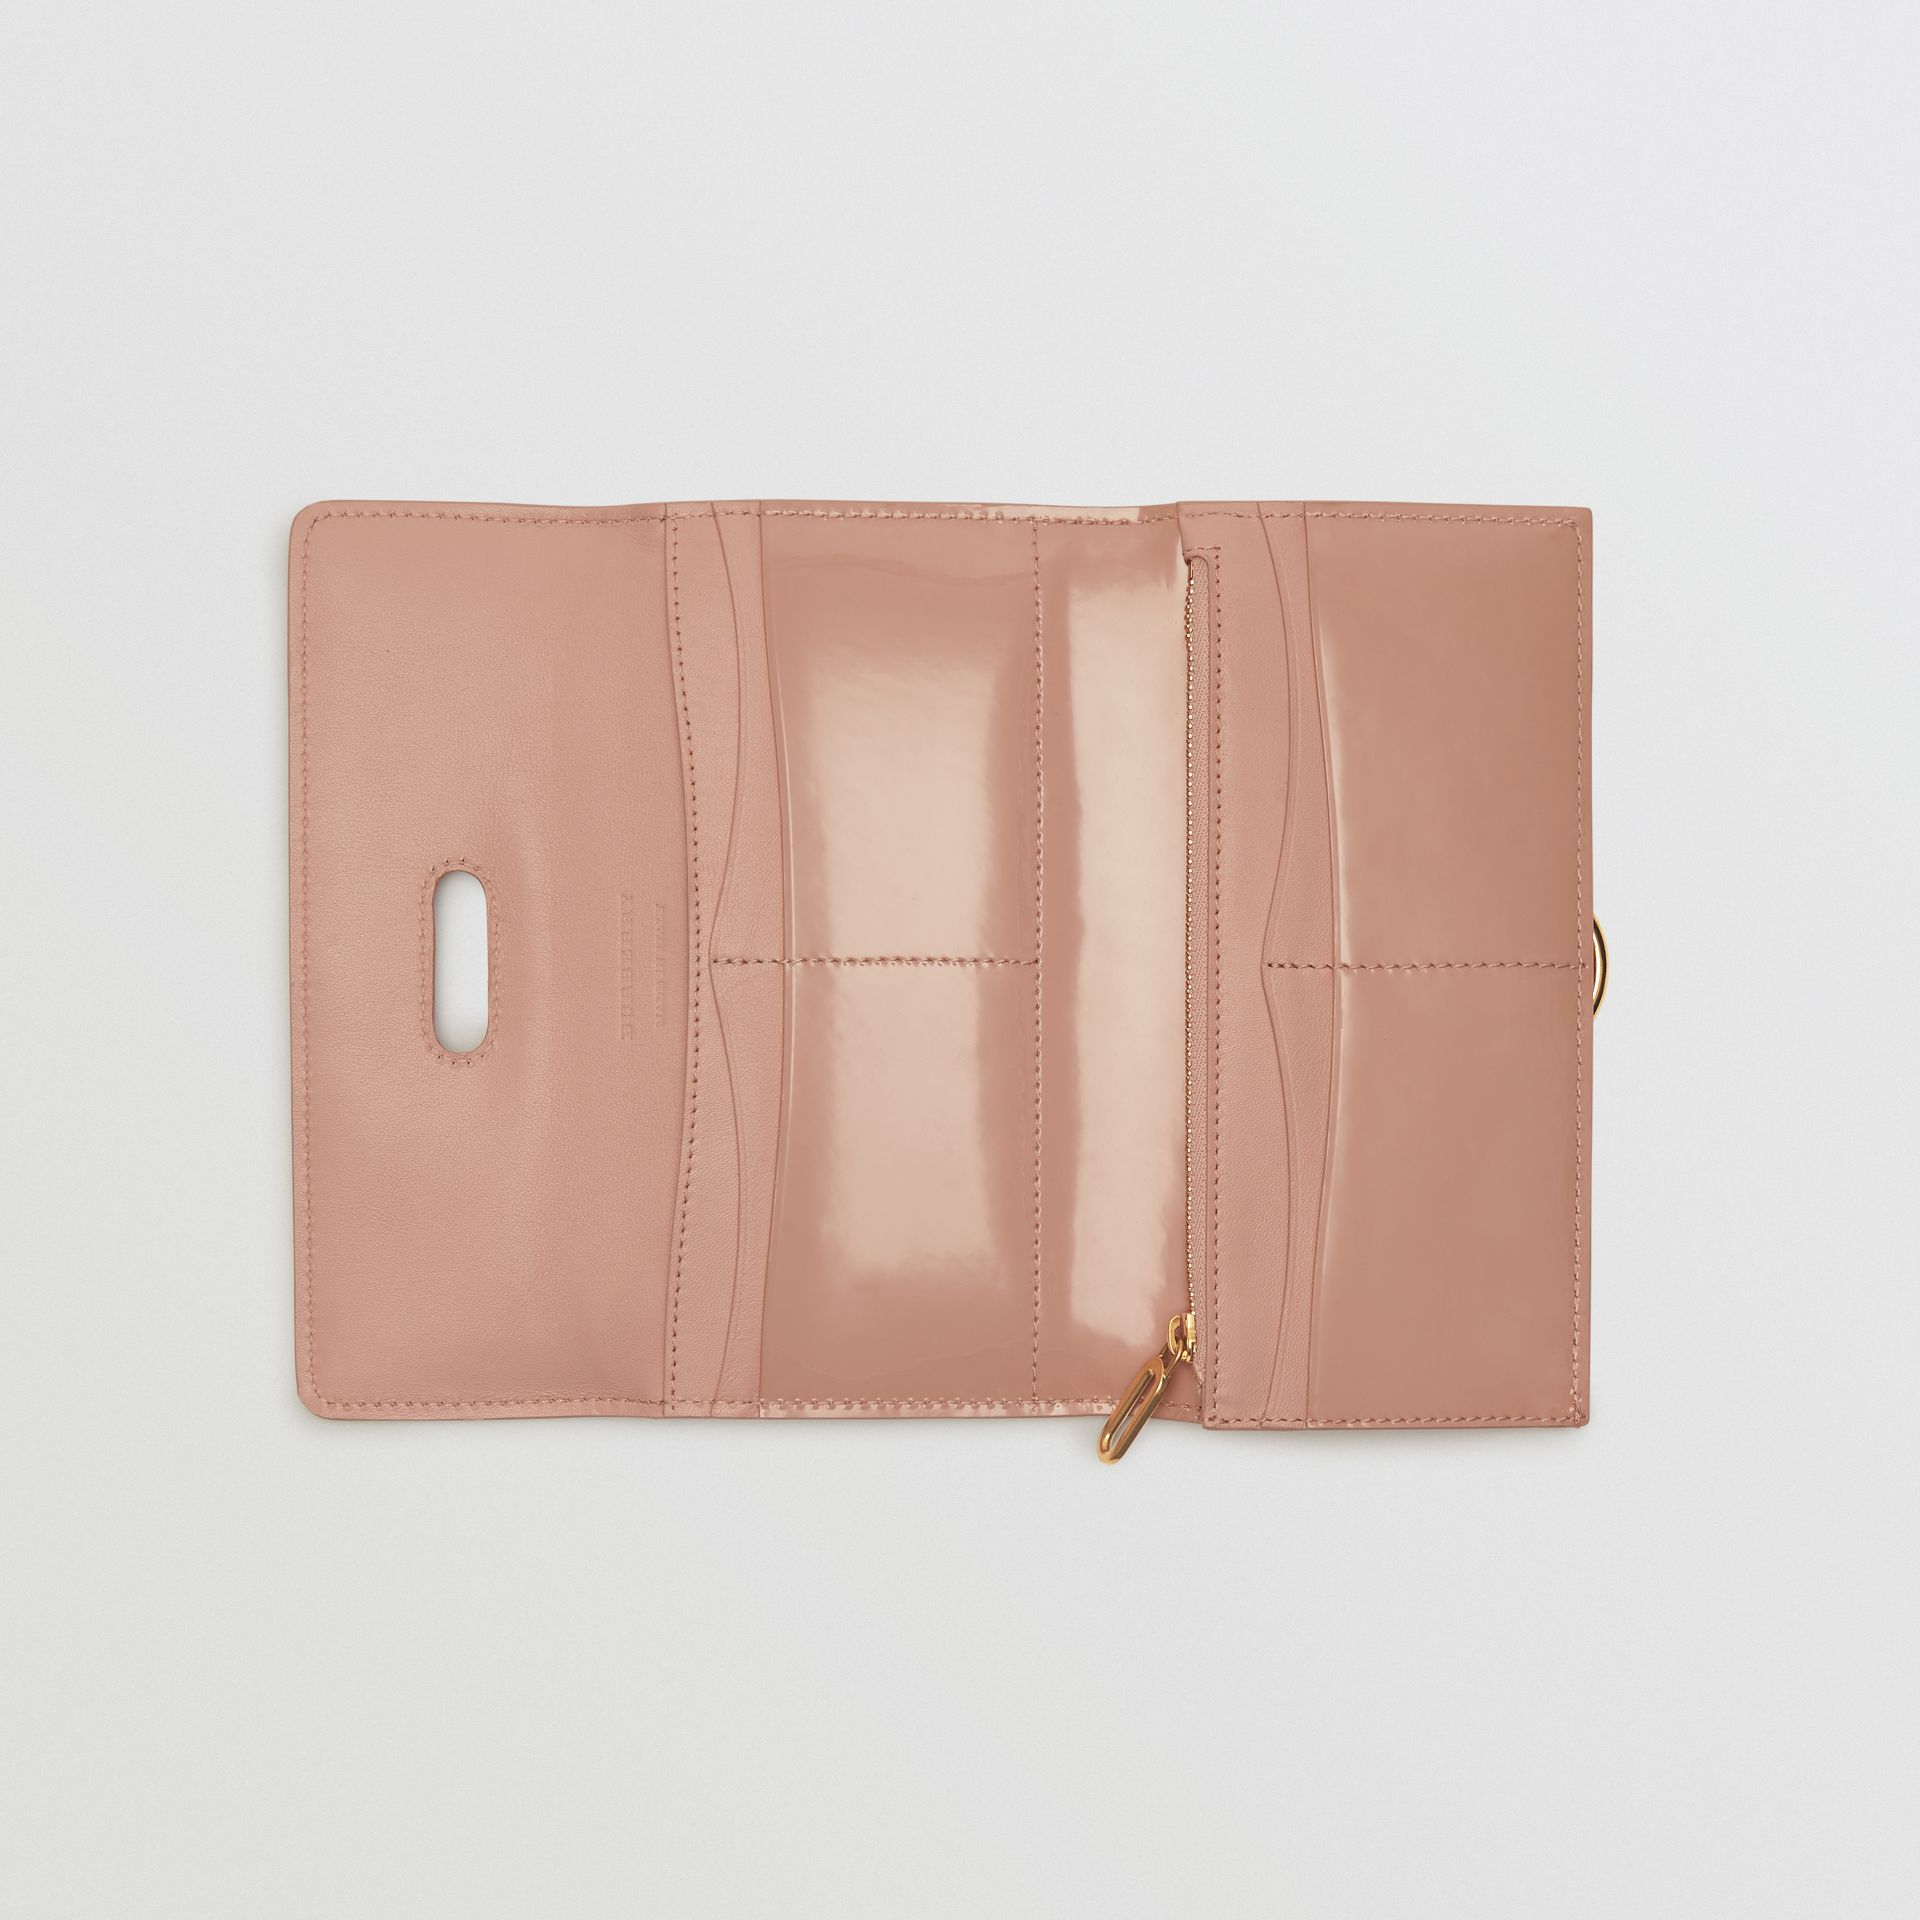 D-ring Patent Leather Continental Wallet in Pale Fawn Pink - Women | Burberry - gallery image 2